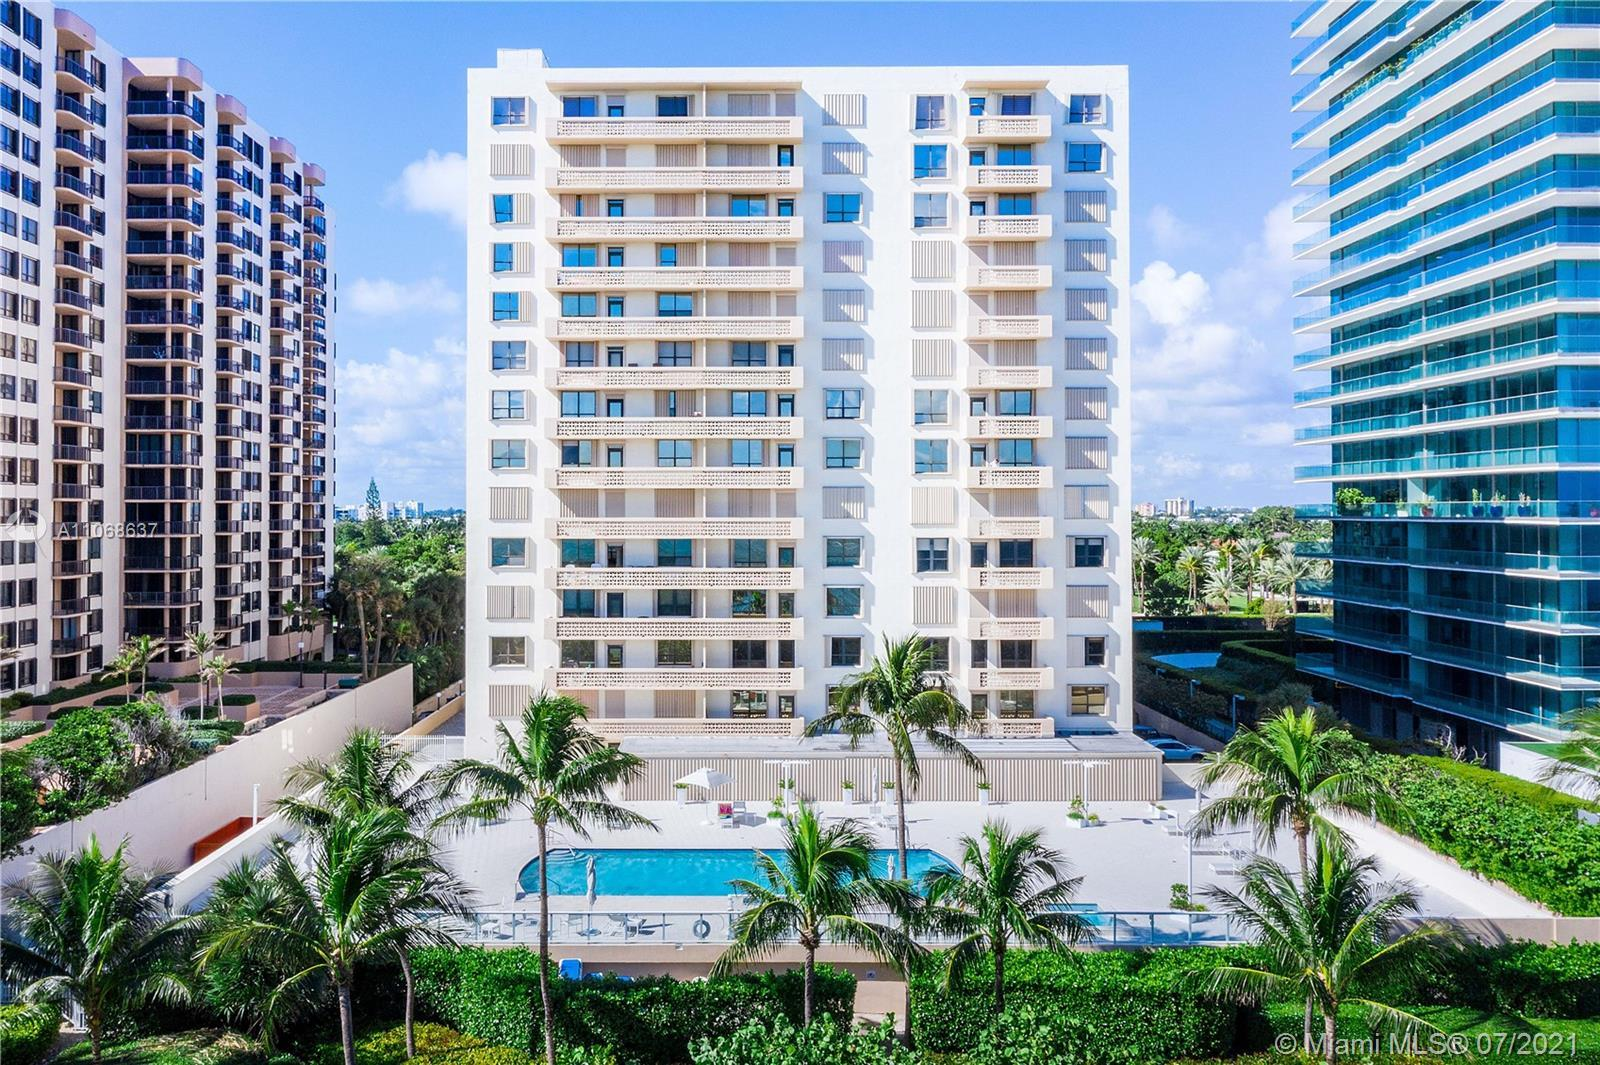 Excellent Ocean and Bay Views. 1 Bedroom 1 1/2 Baths, Granite kitchen counters and granite counter b